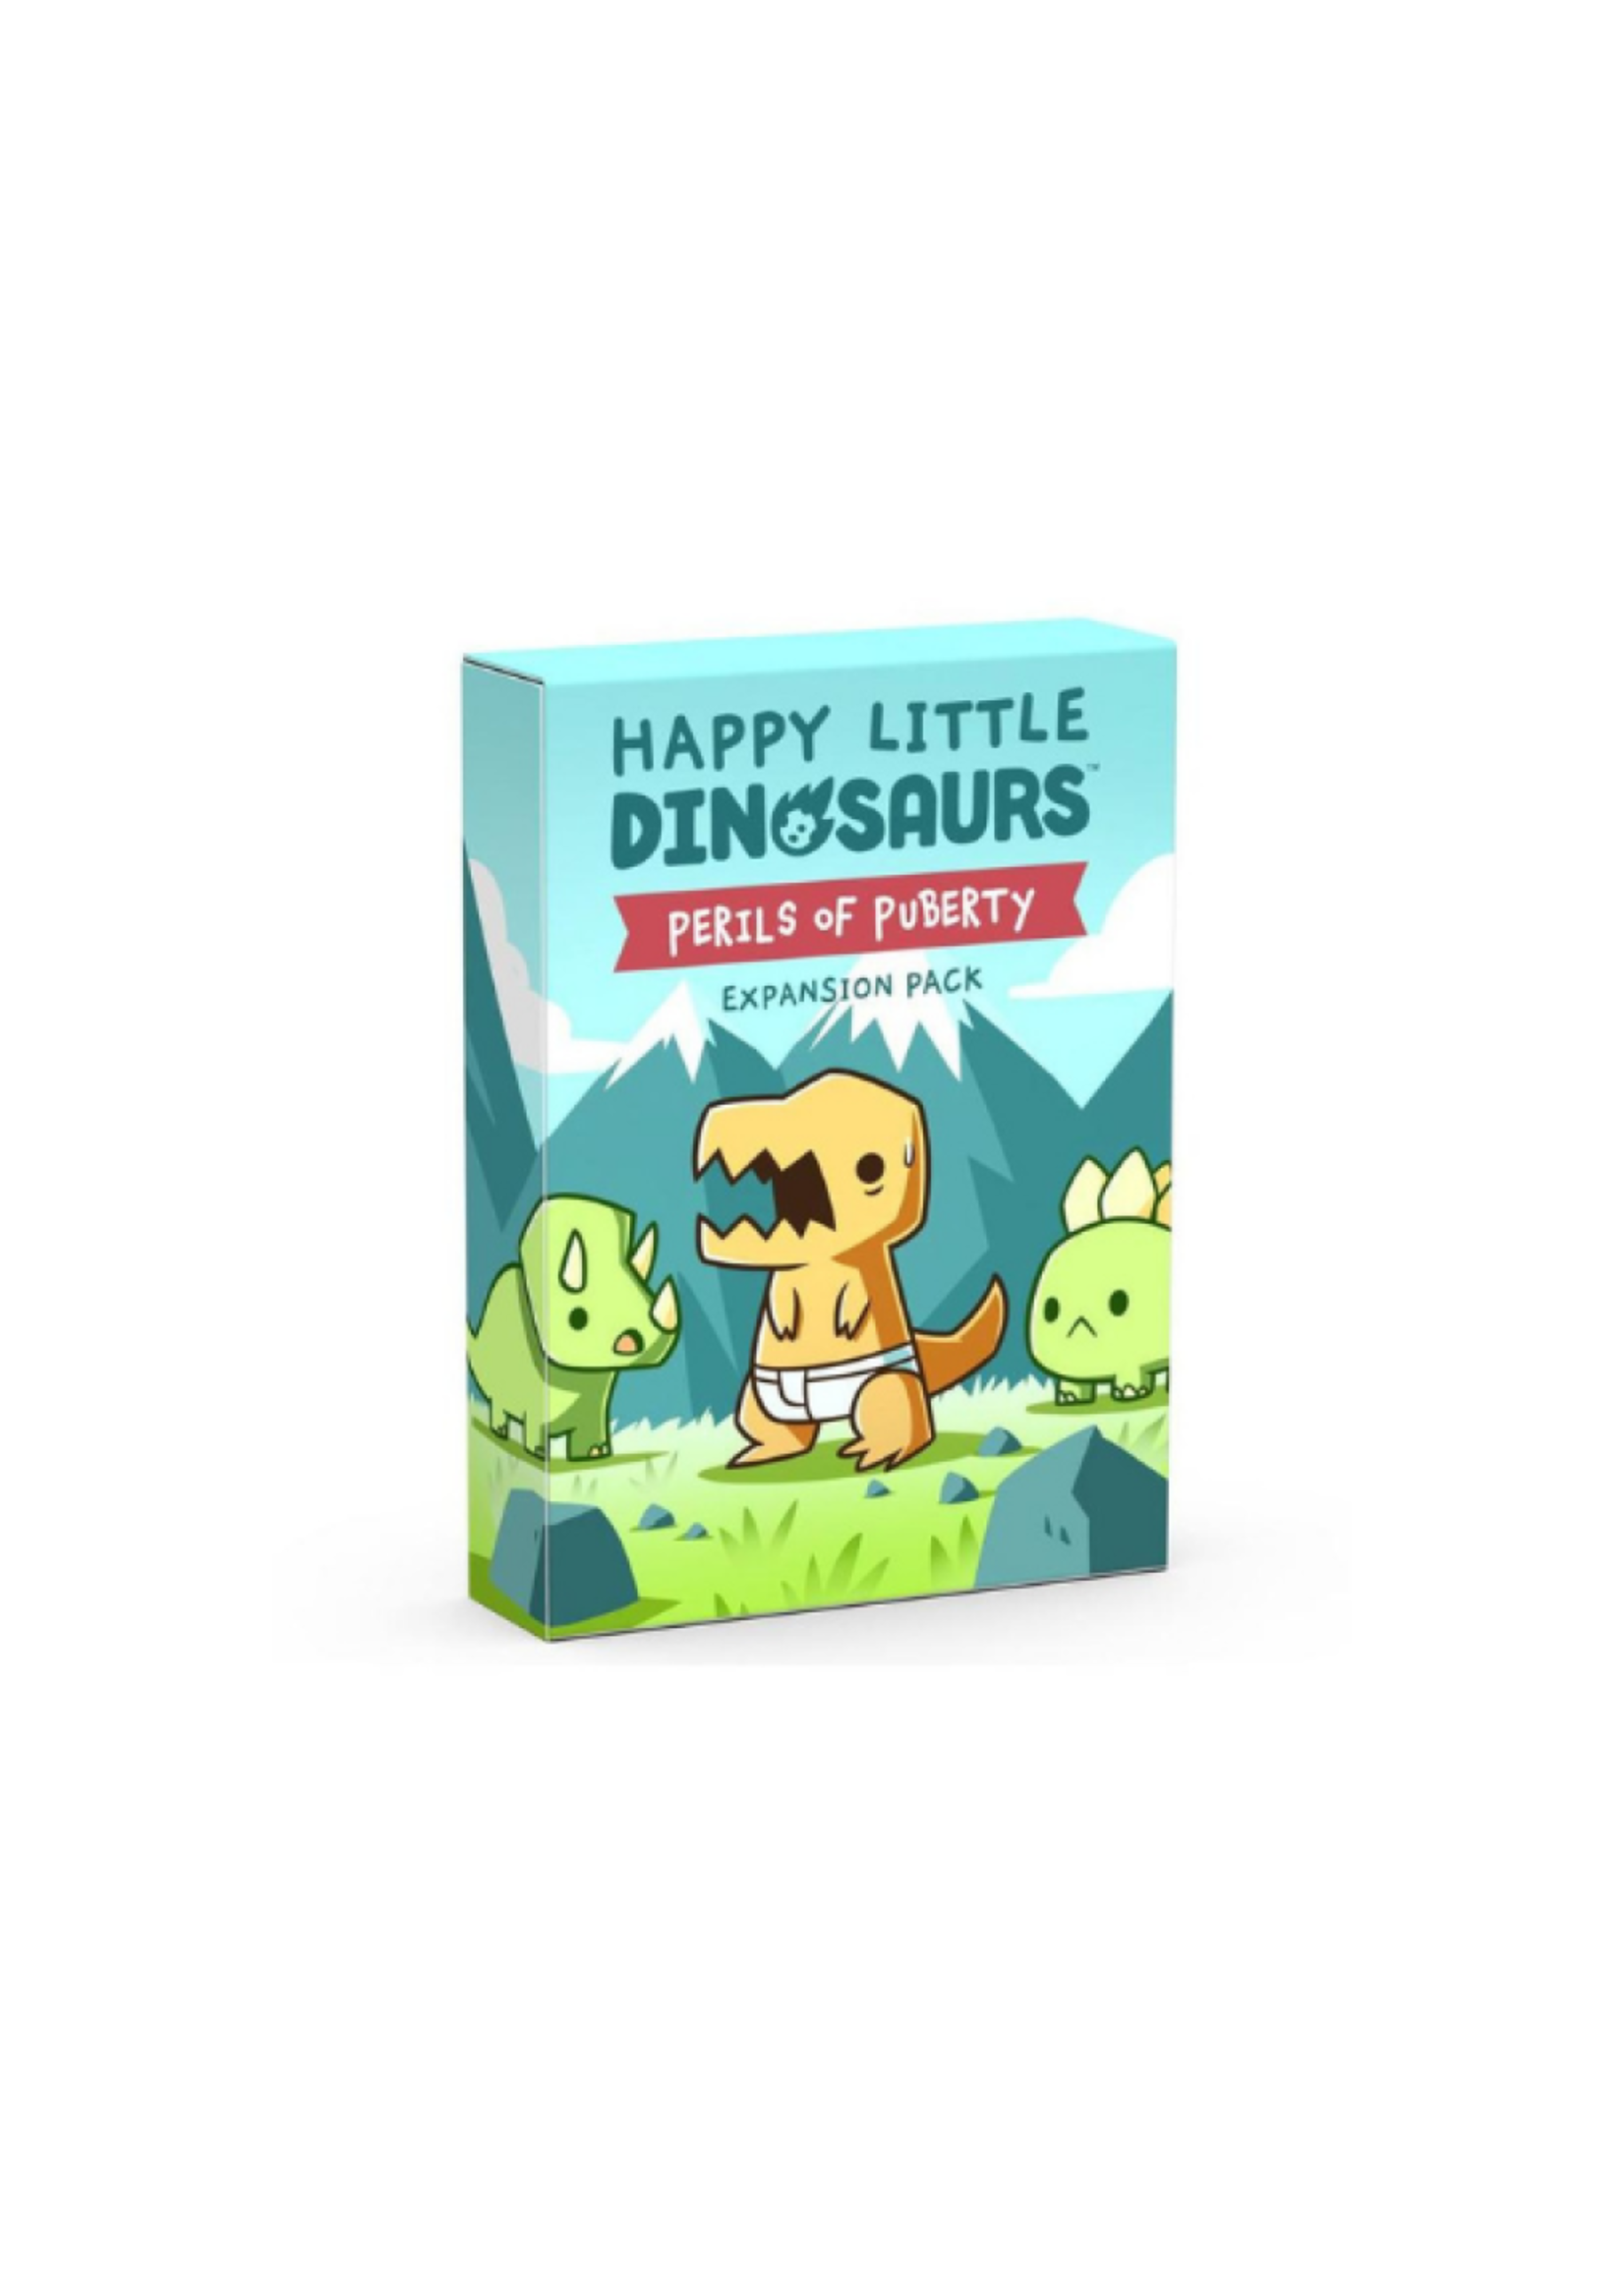 Happy Little Dinosaurs Perils of Puberty expansion